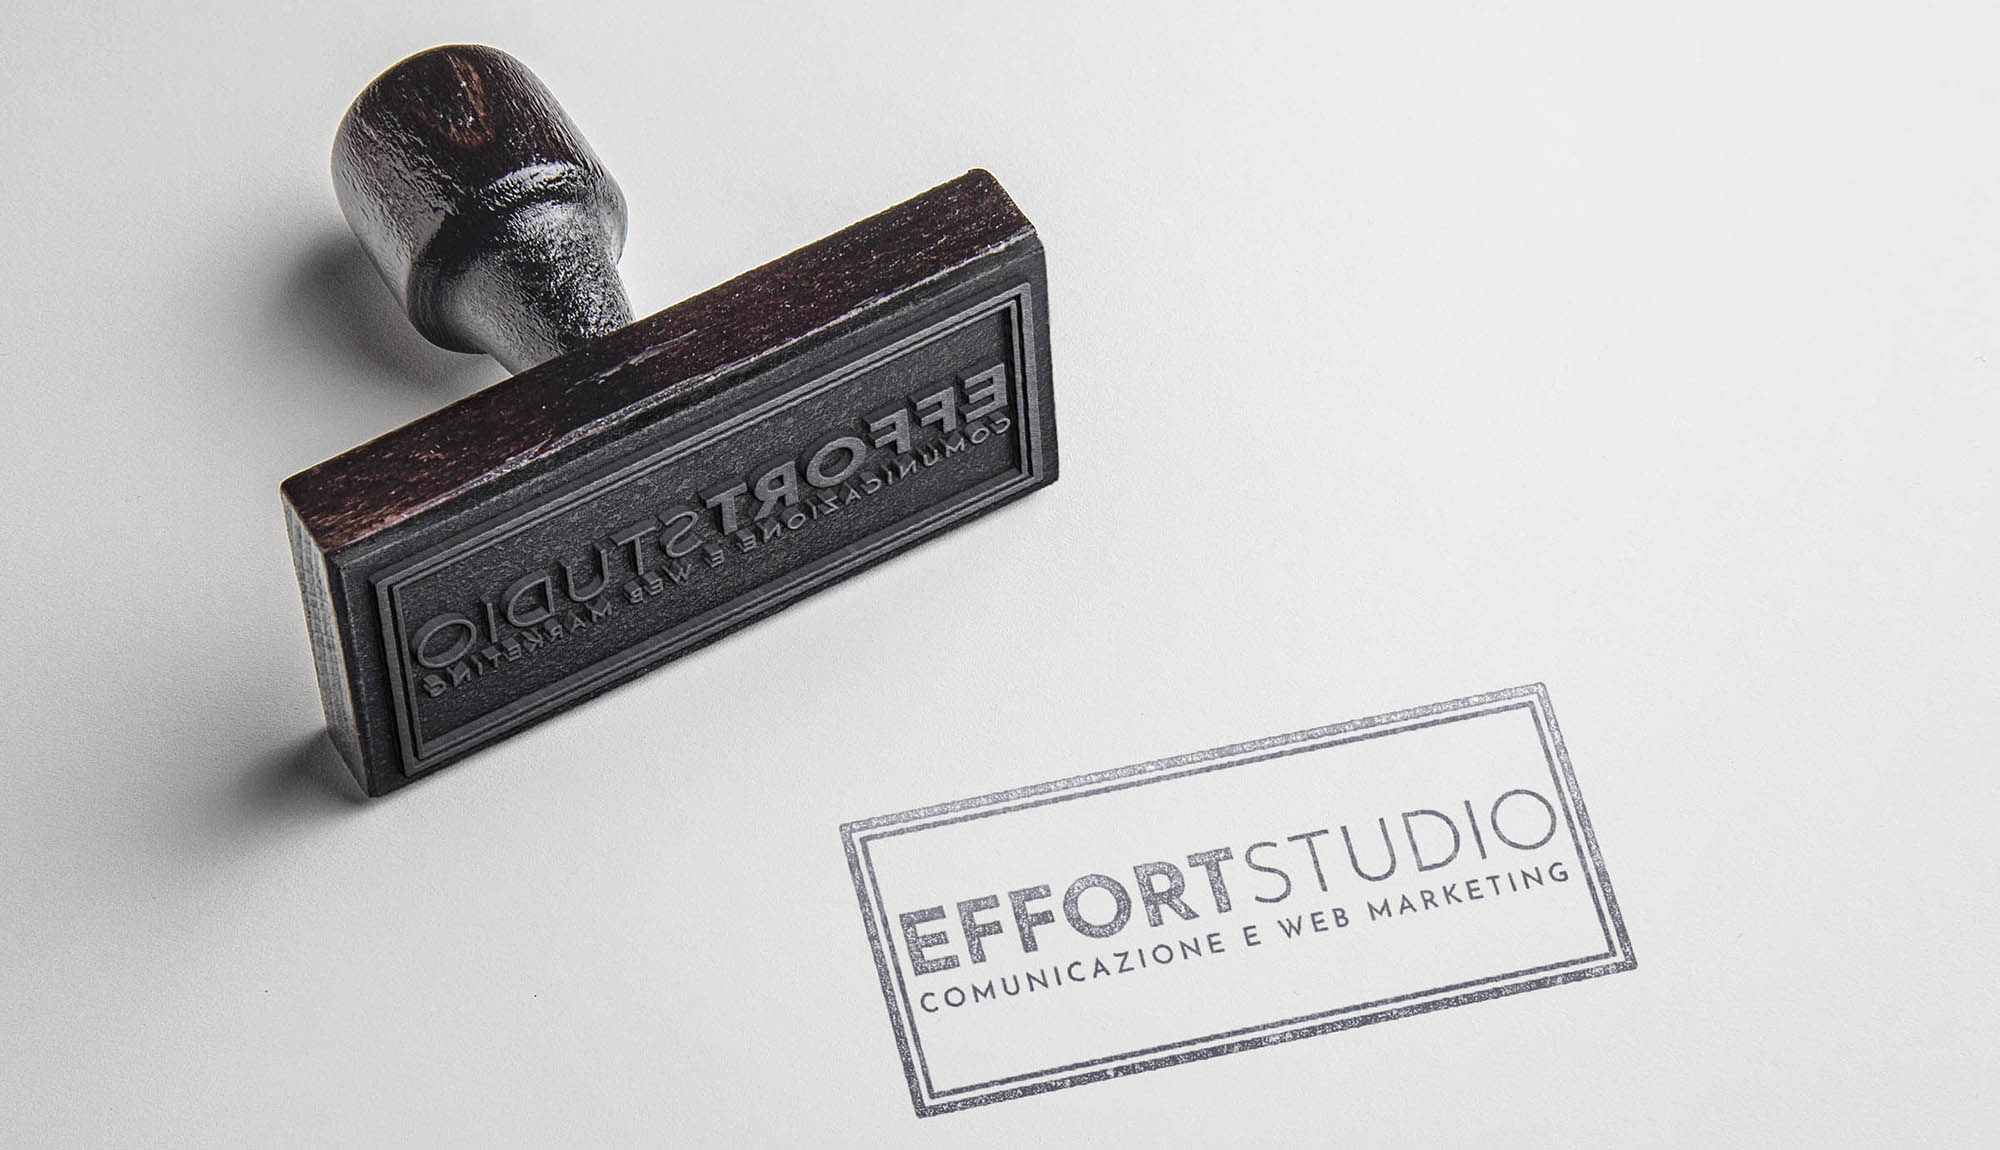 Effort Studio